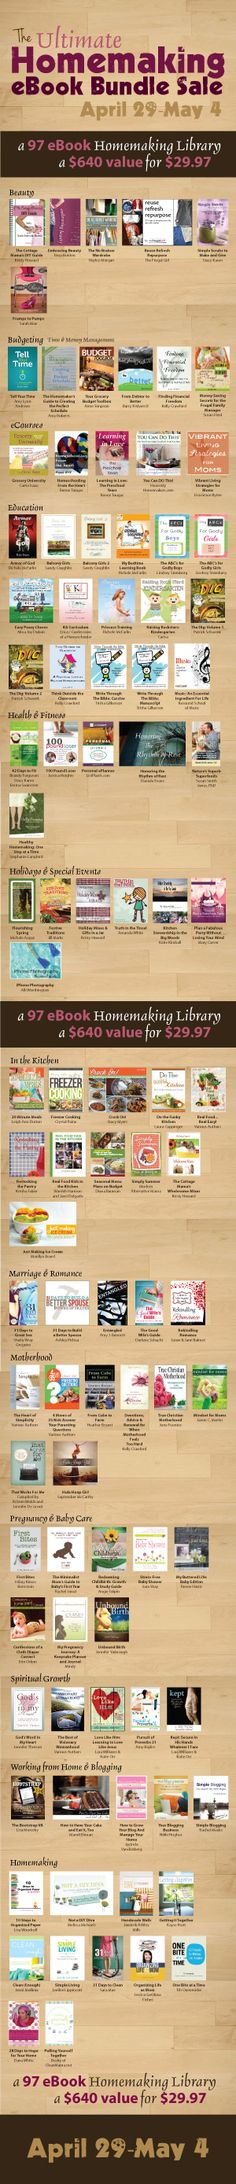 The Ultimate Homemaking eBook Bundle -- $29.97 for over $640 worth of eBooks!!